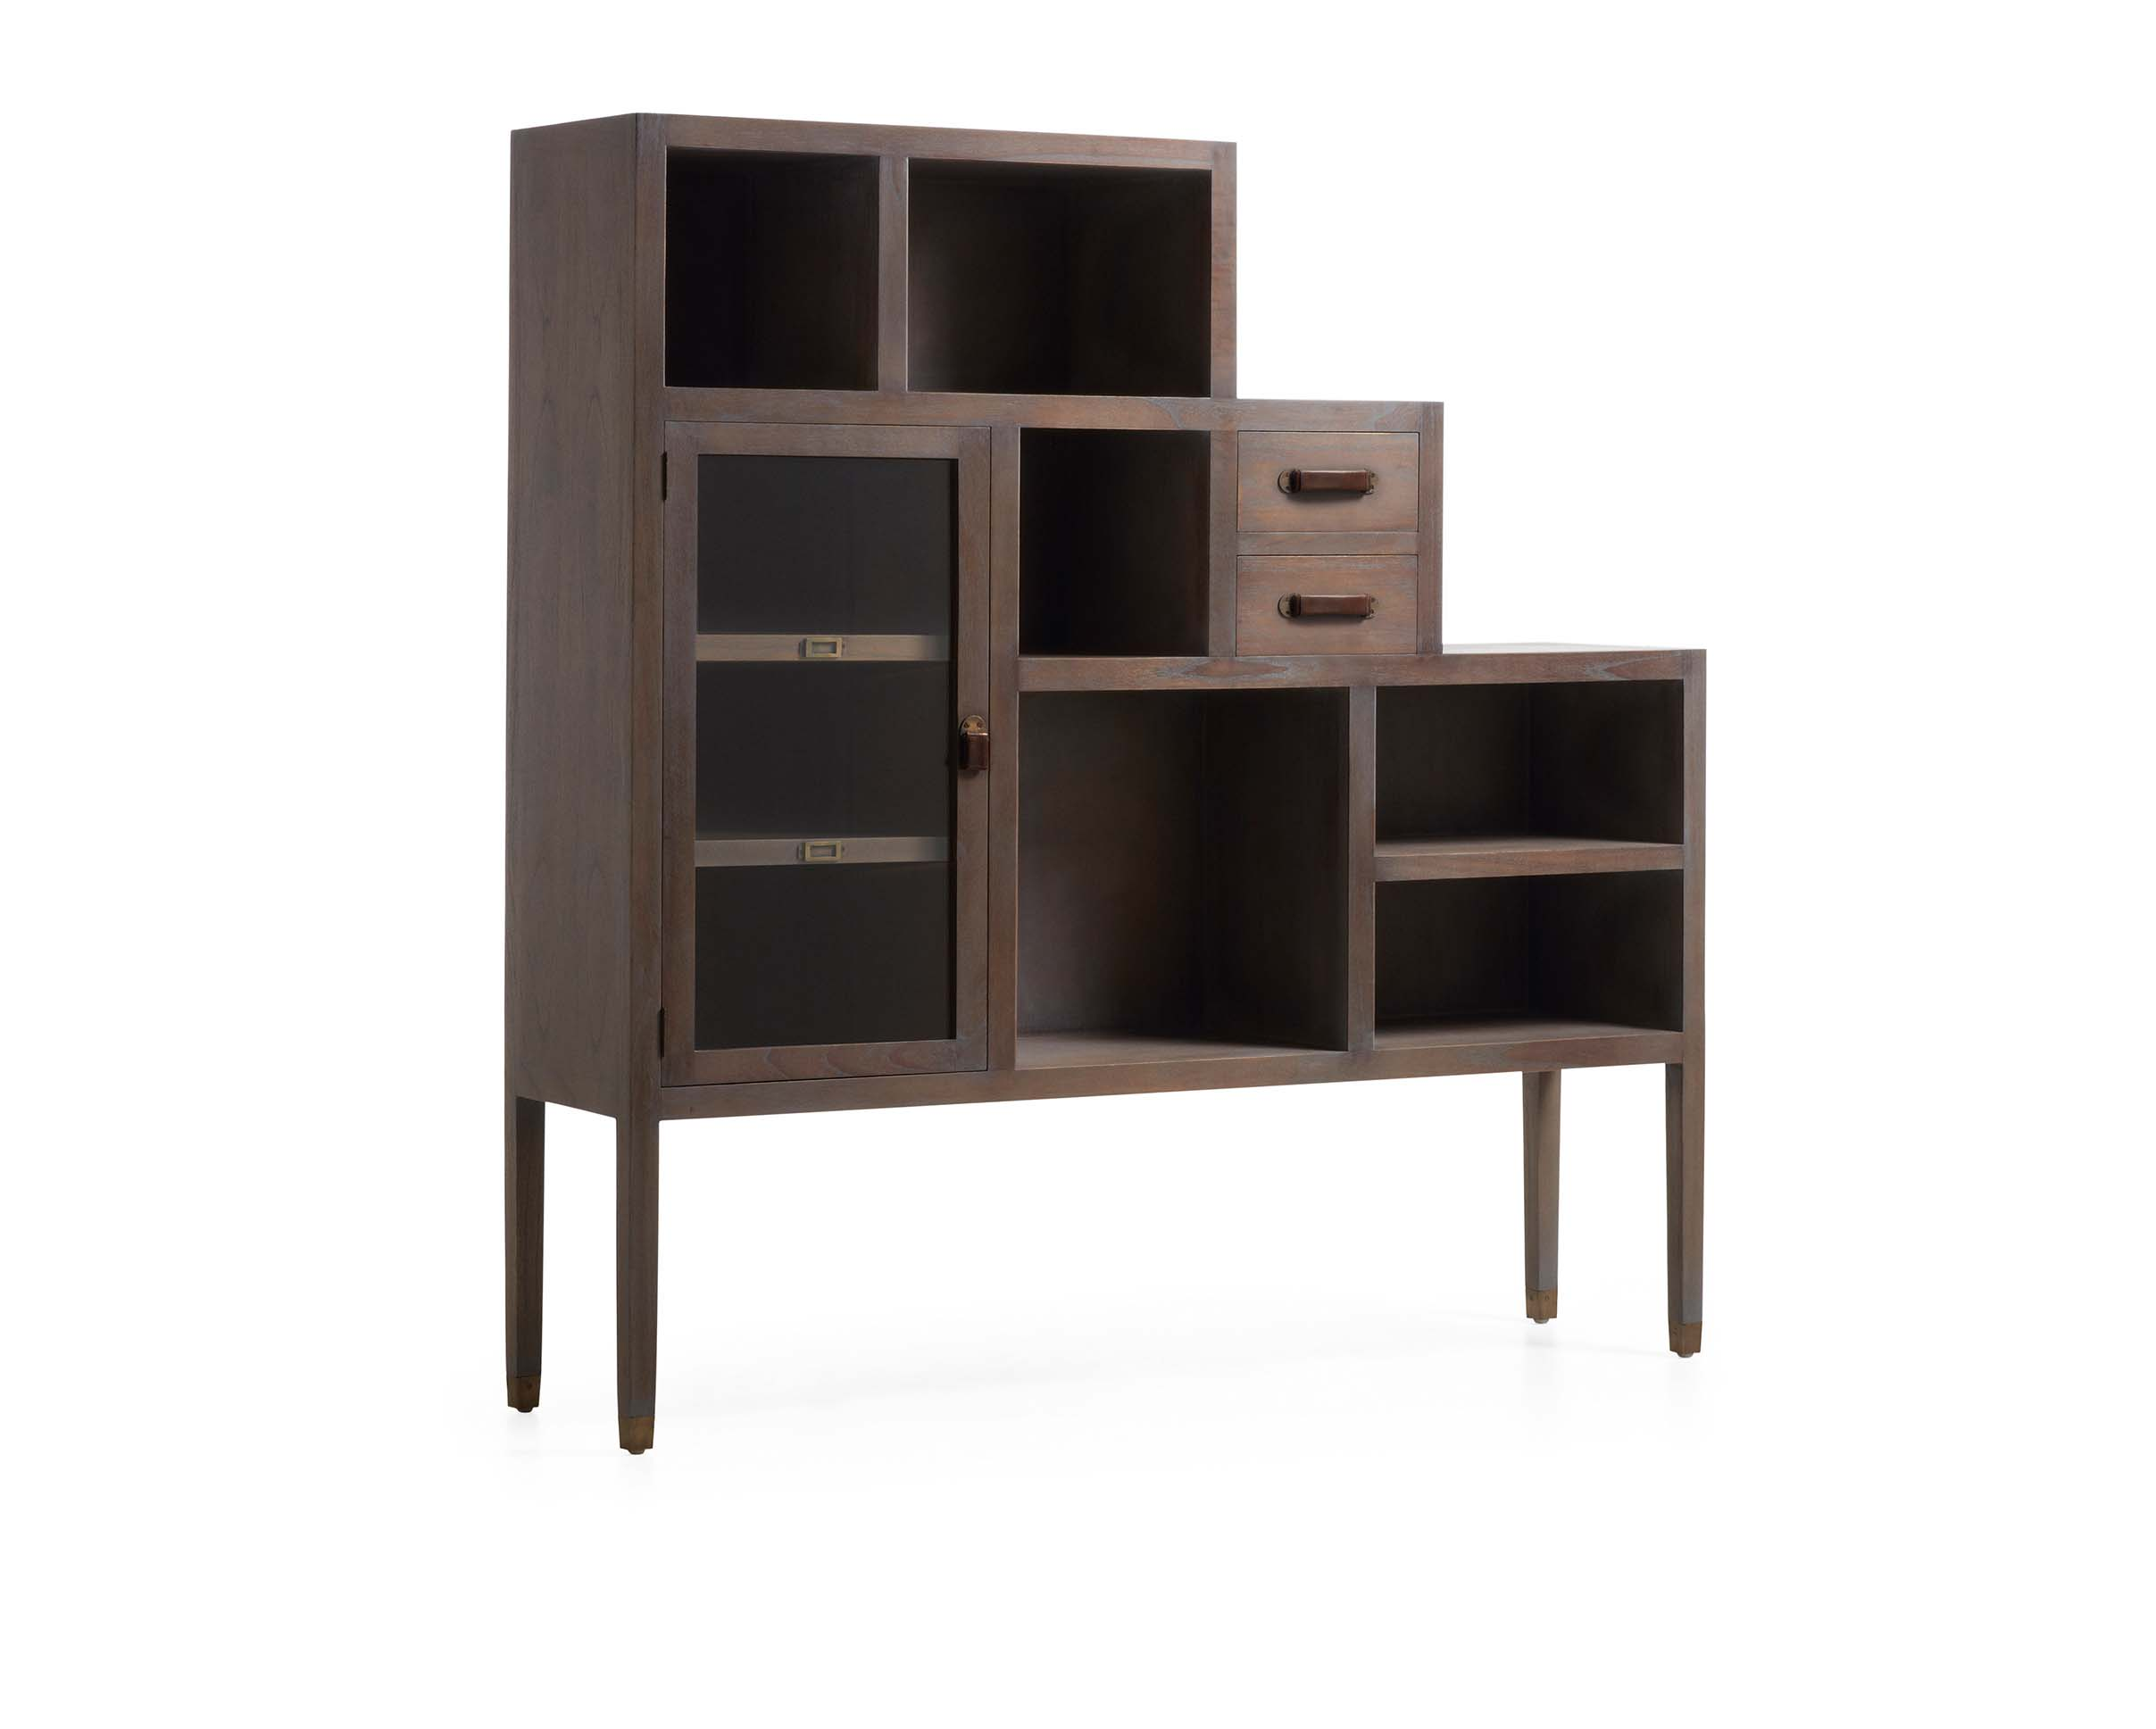 biblioth que haute en meuble d 39 escalier couleur grise bois de mindy collection tana. Black Bedroom Furniture Sets. Home Design Ideas